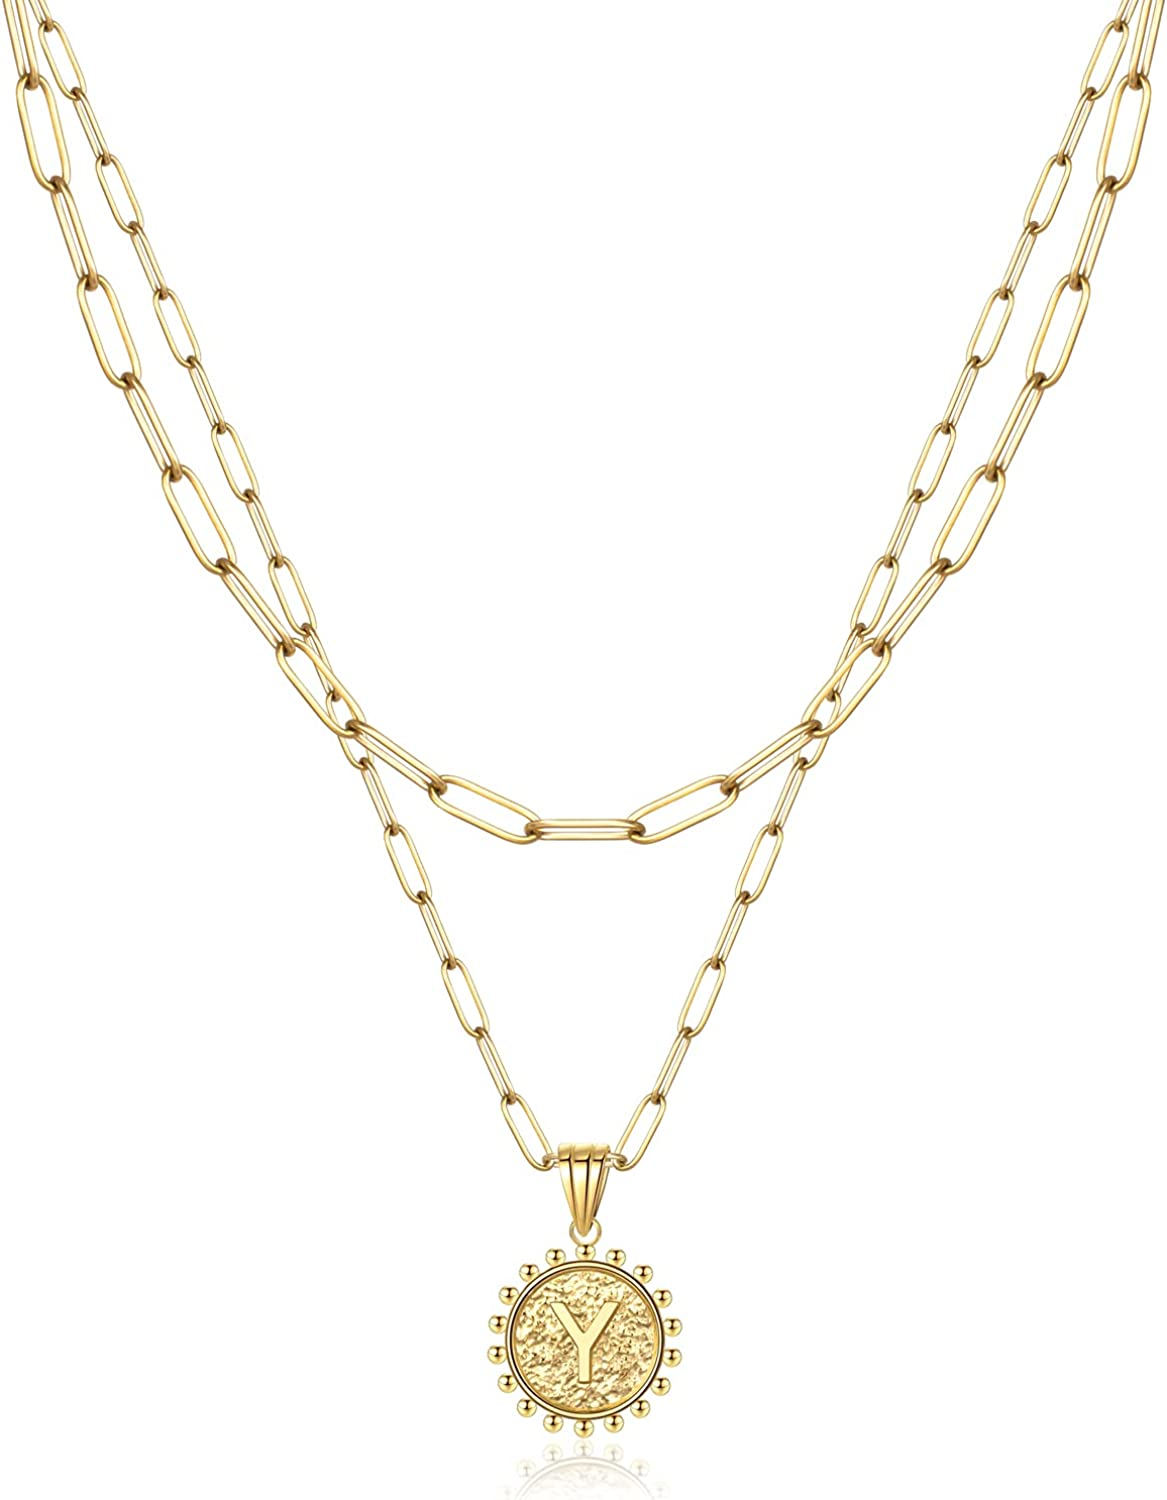 ZMZY Gold Layered Necklaces For Women 14k Gold Plated Paperclip Chain Necklace Dainty Cute Hexagon Letter Pendant Choker